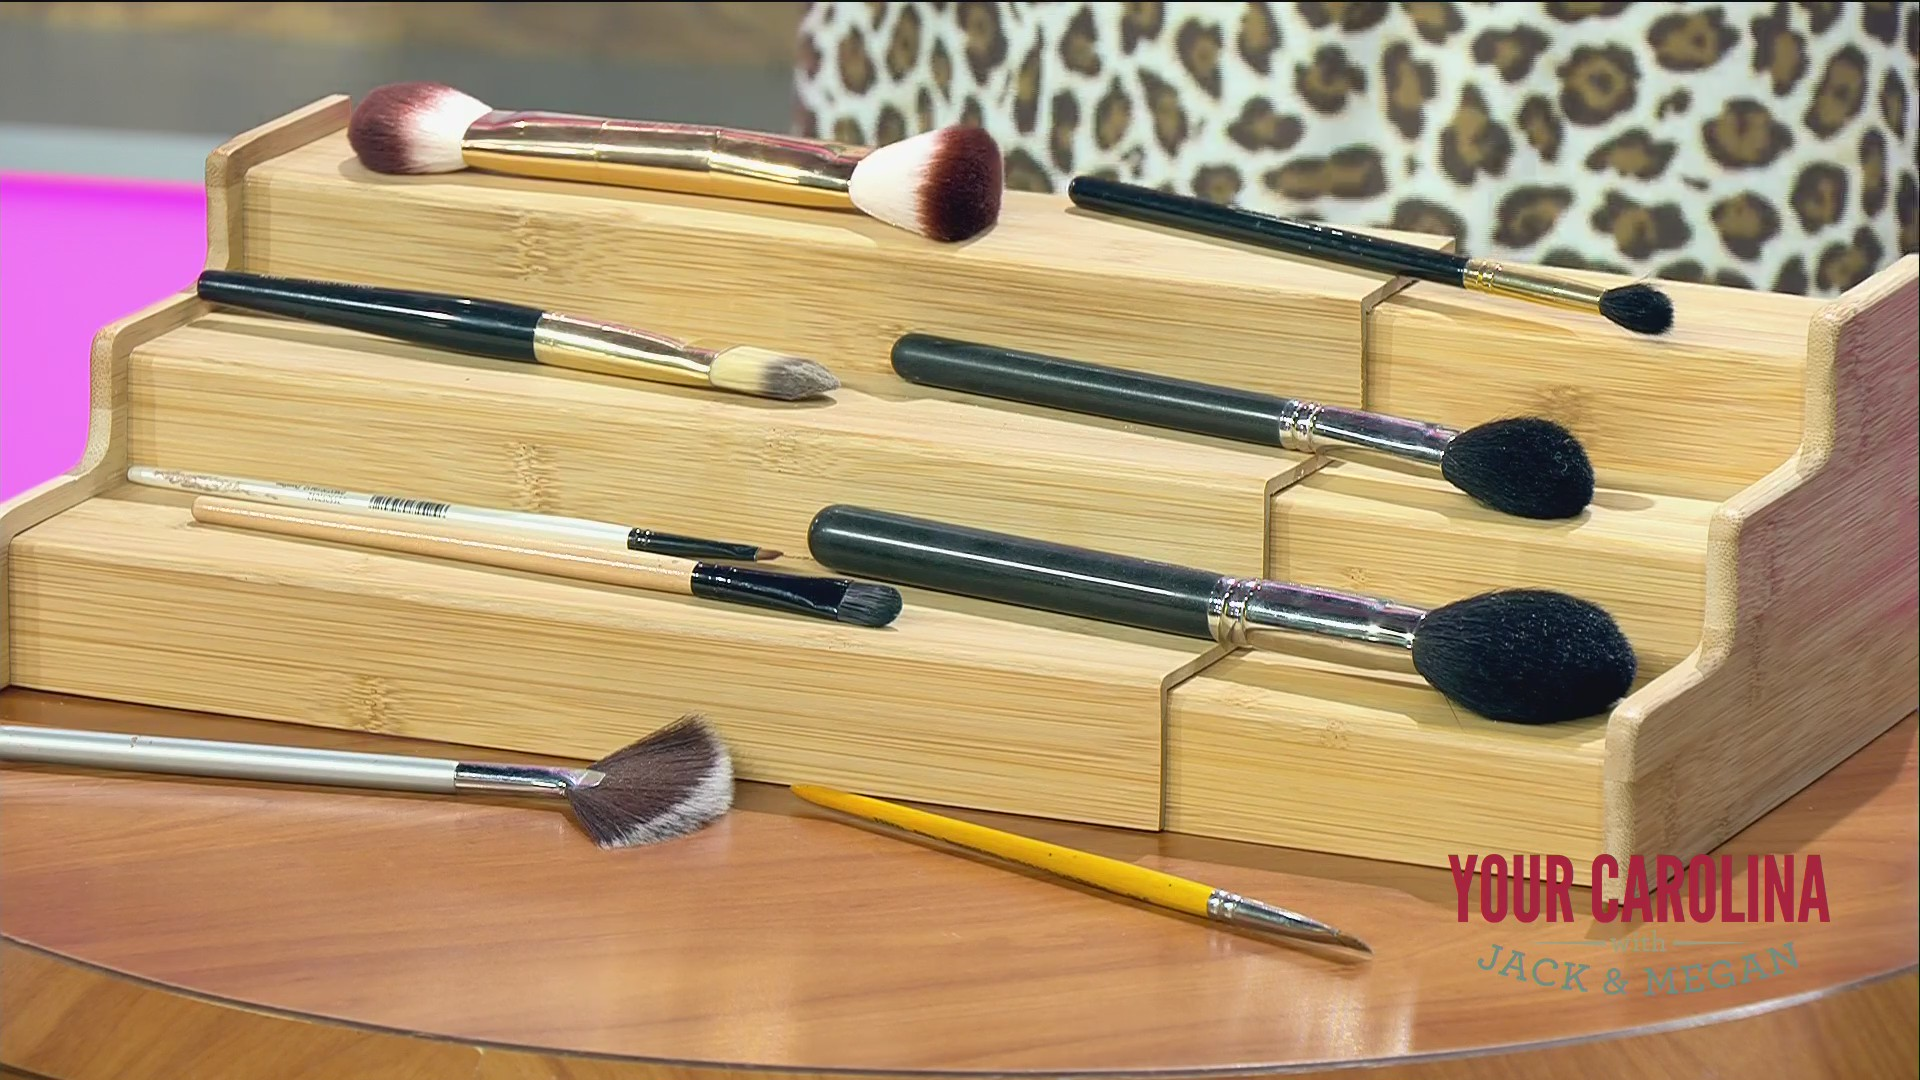 Work It Wednesday - Which Makeup Brush To Use And Where